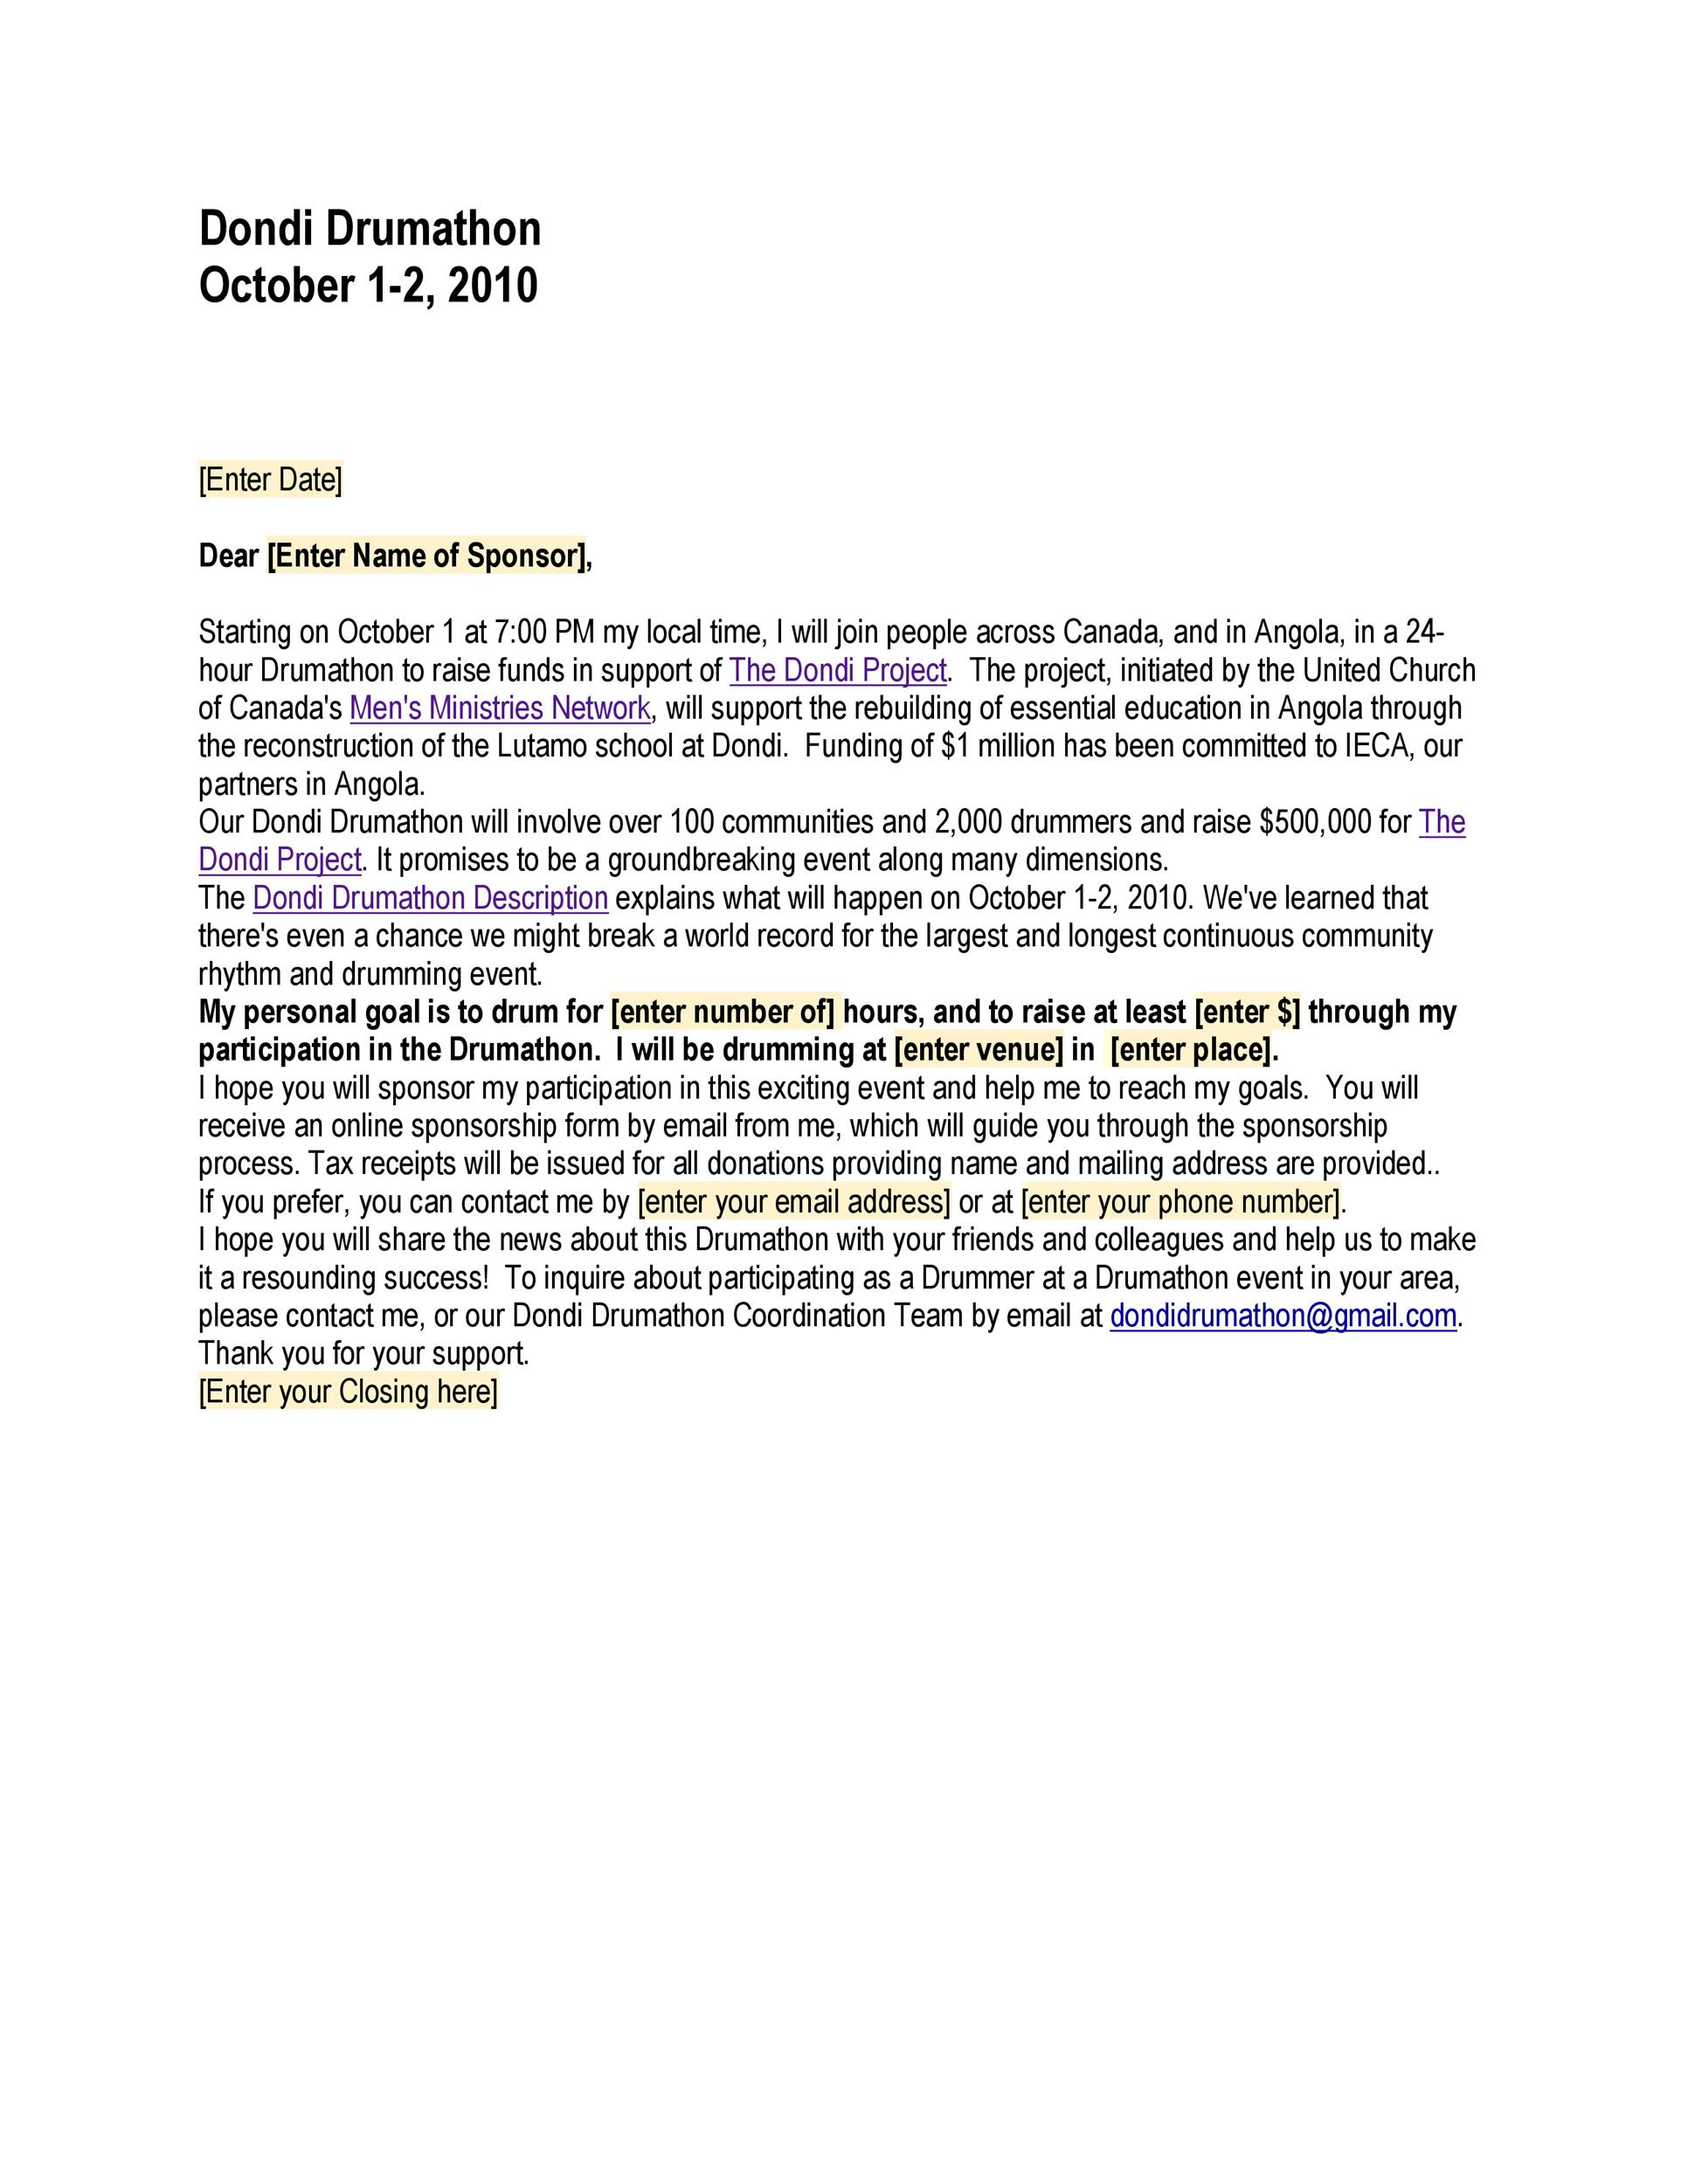 grant application cover letter sample